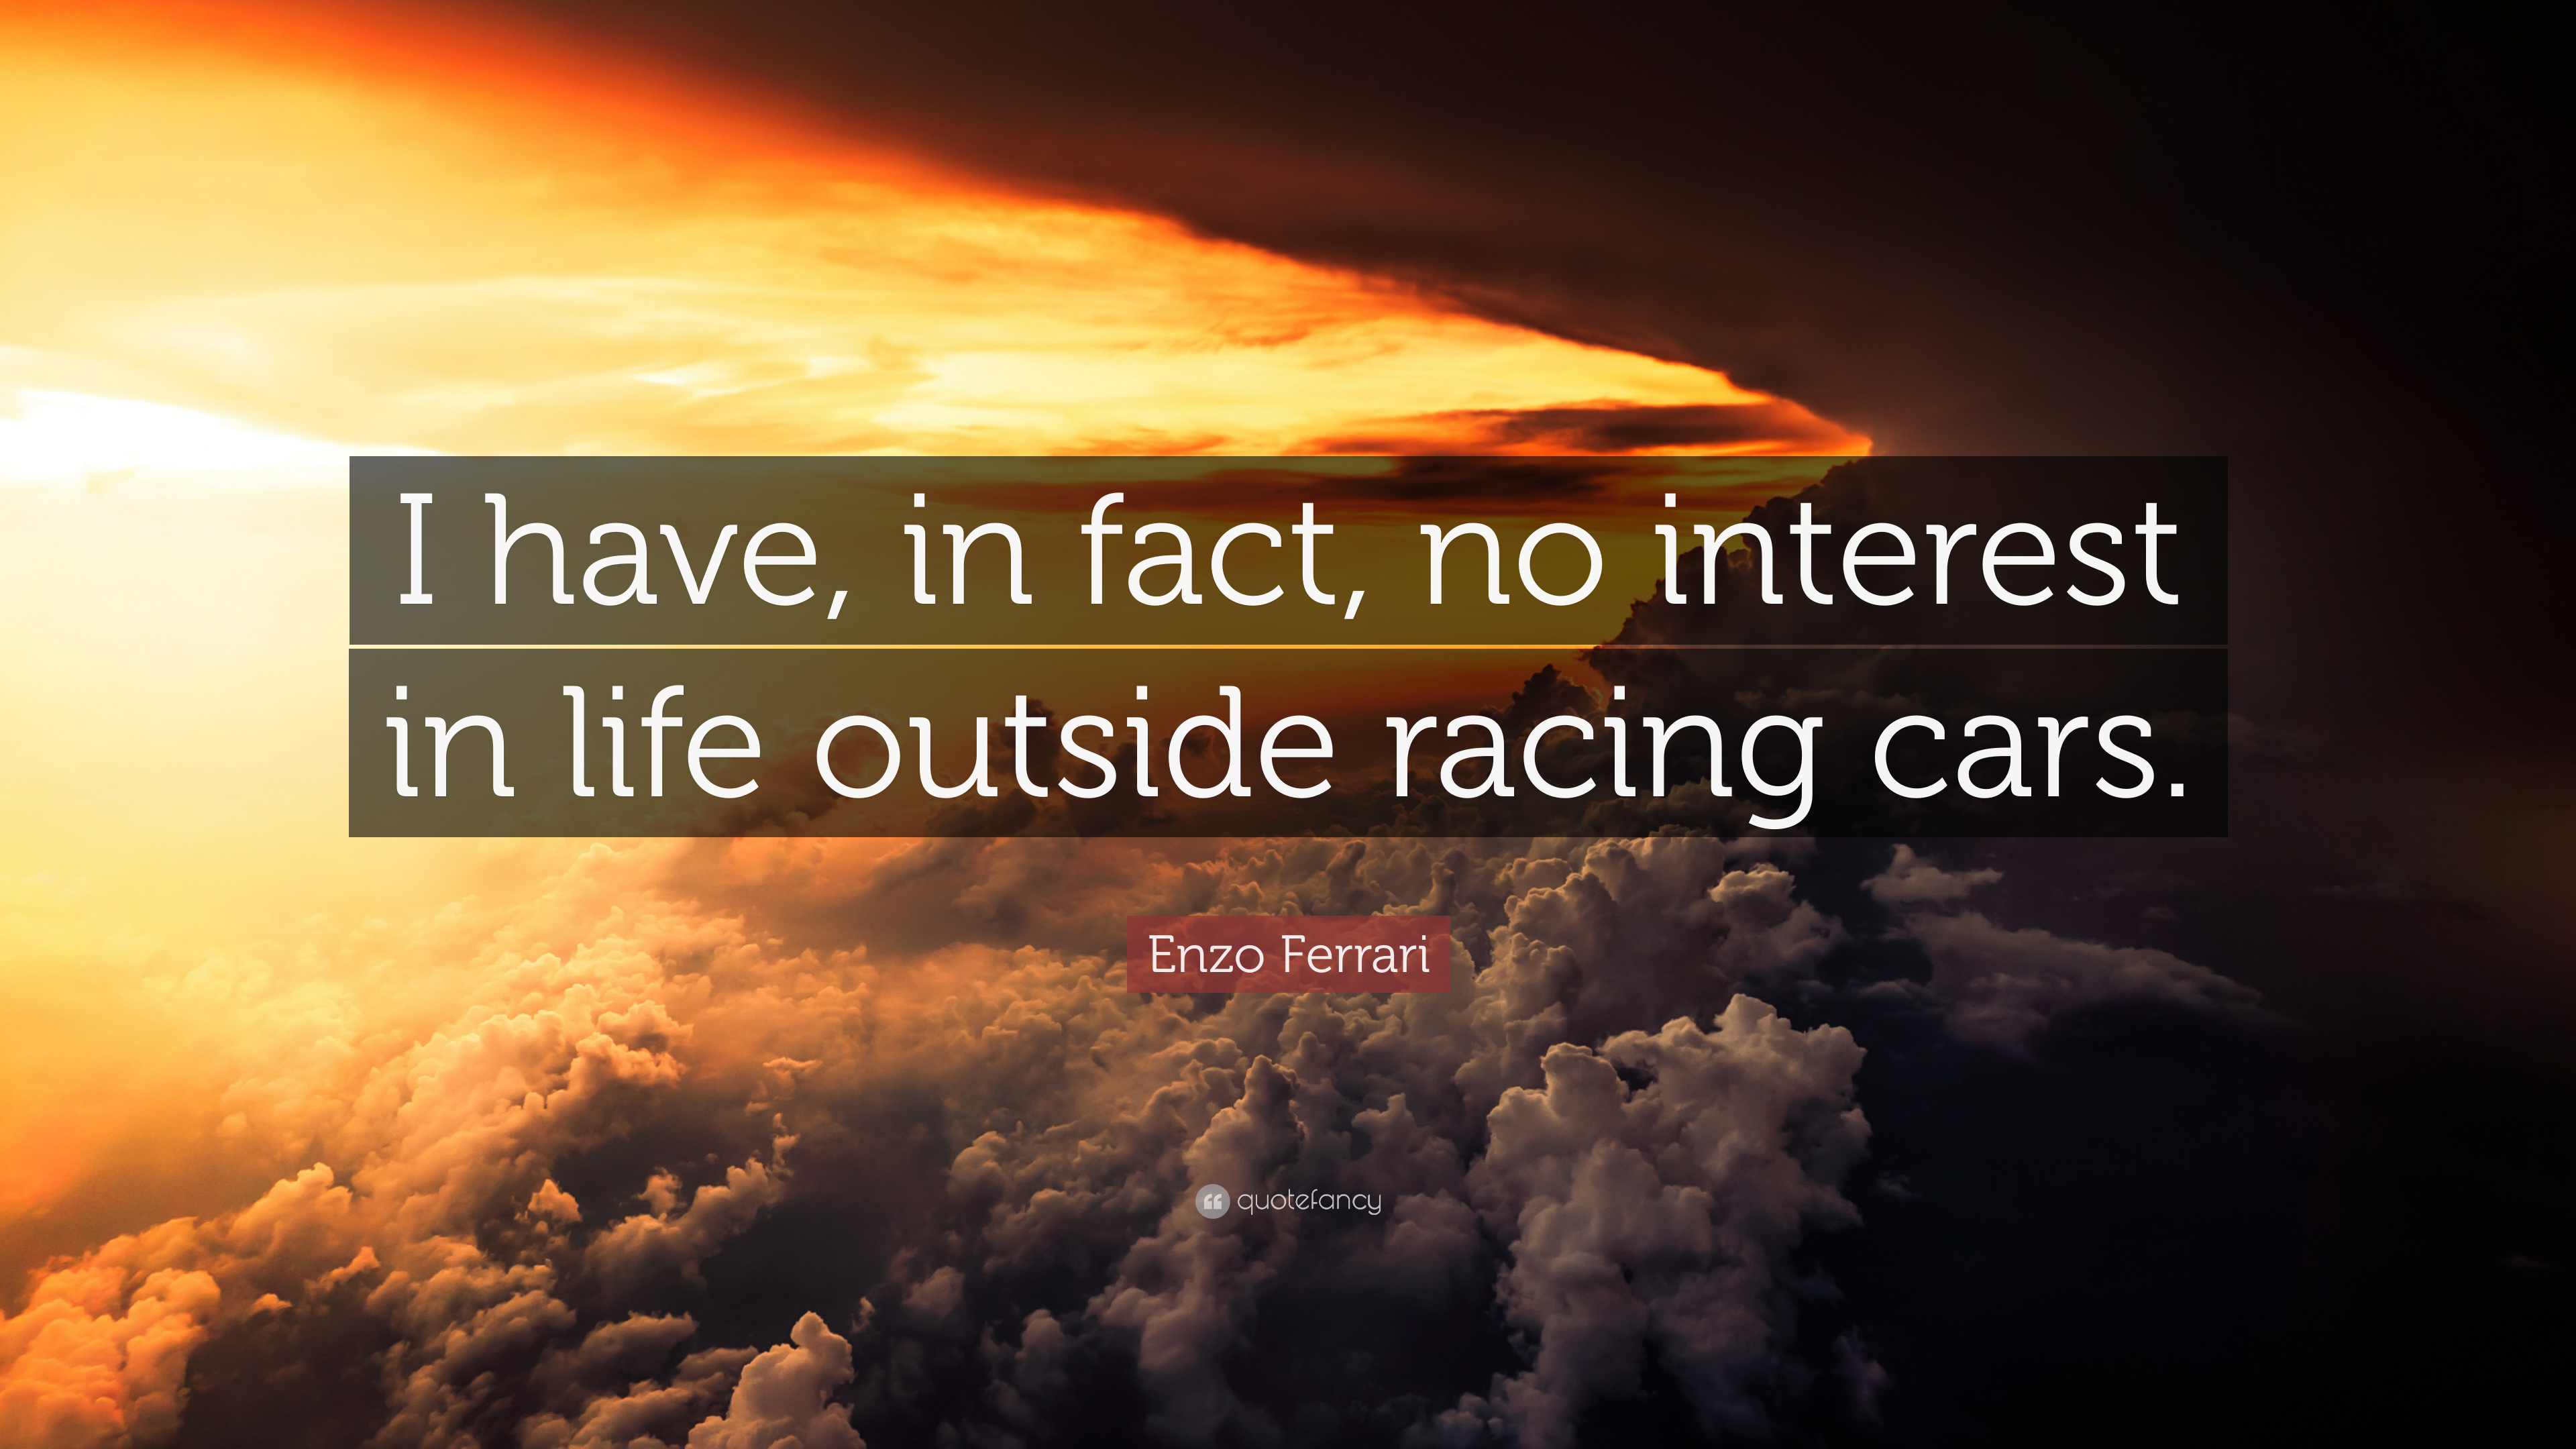 Enzo Ferrari Quote I Have In Fact No Interest In Life Outside